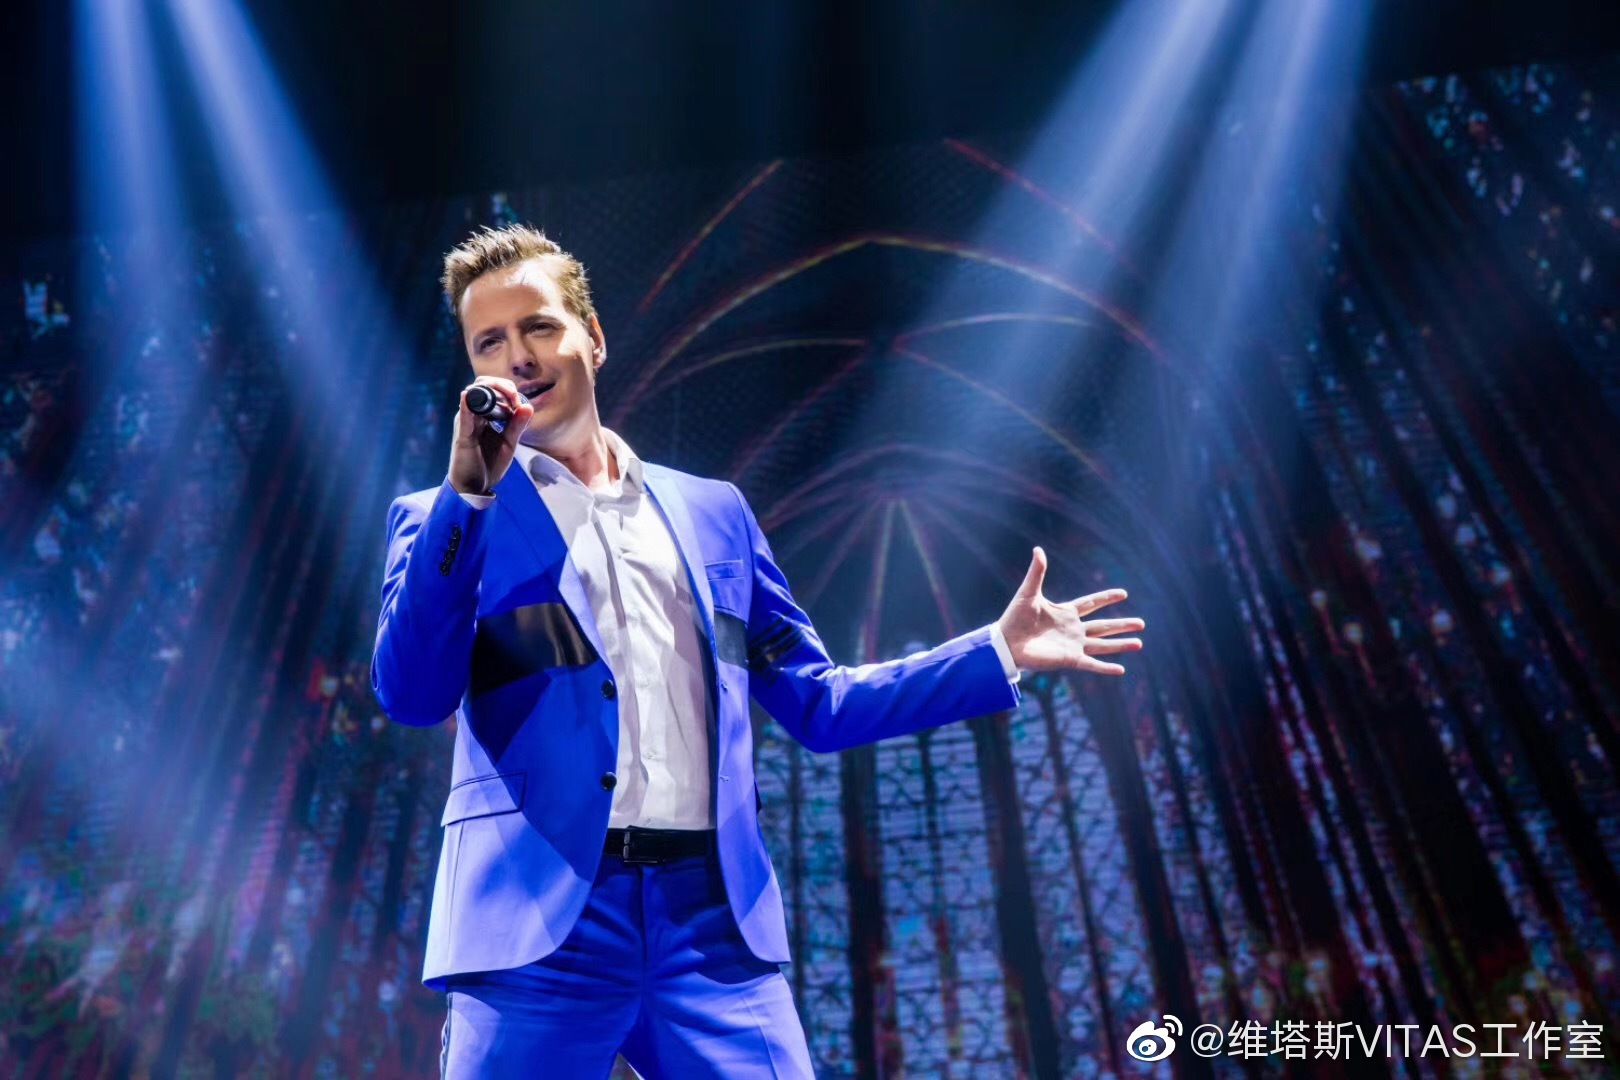 News | VITAS official website